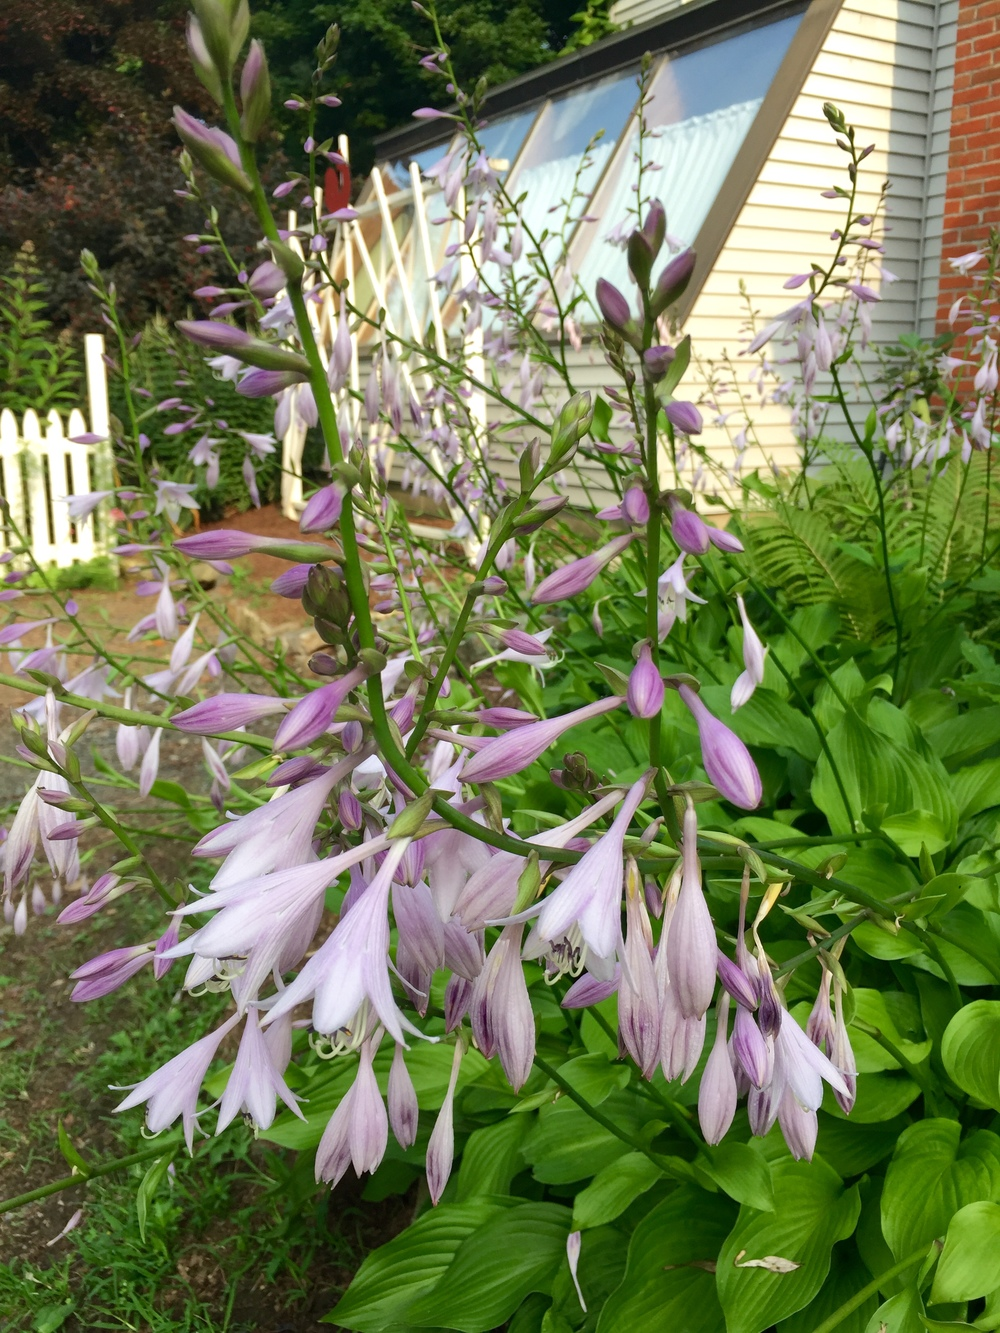 The lowly plain green hosta